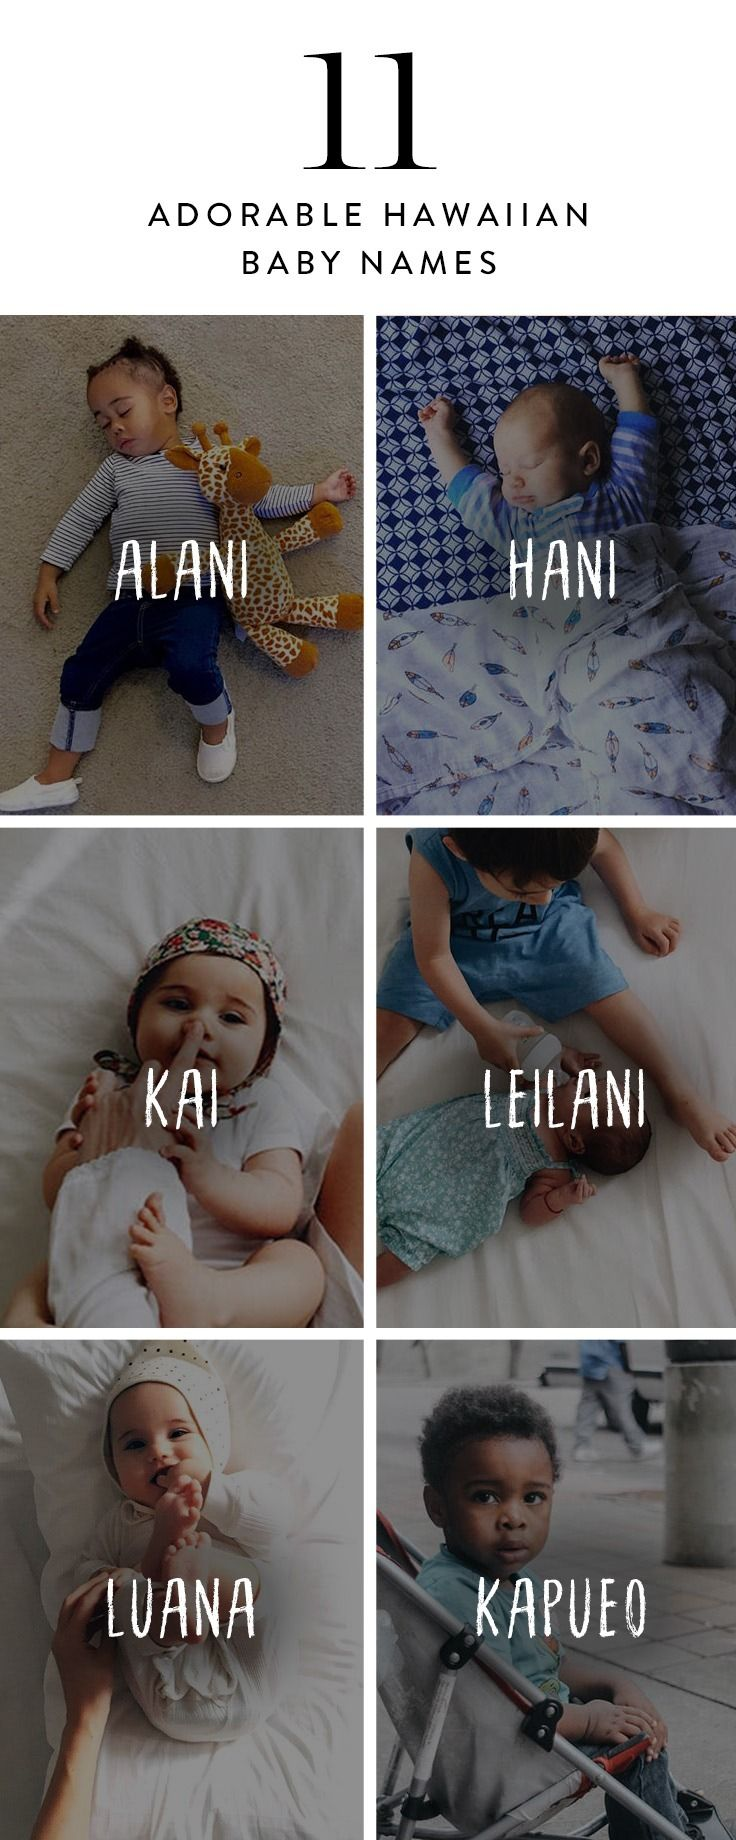 Here are 11 adorable Hawaiian baby names.